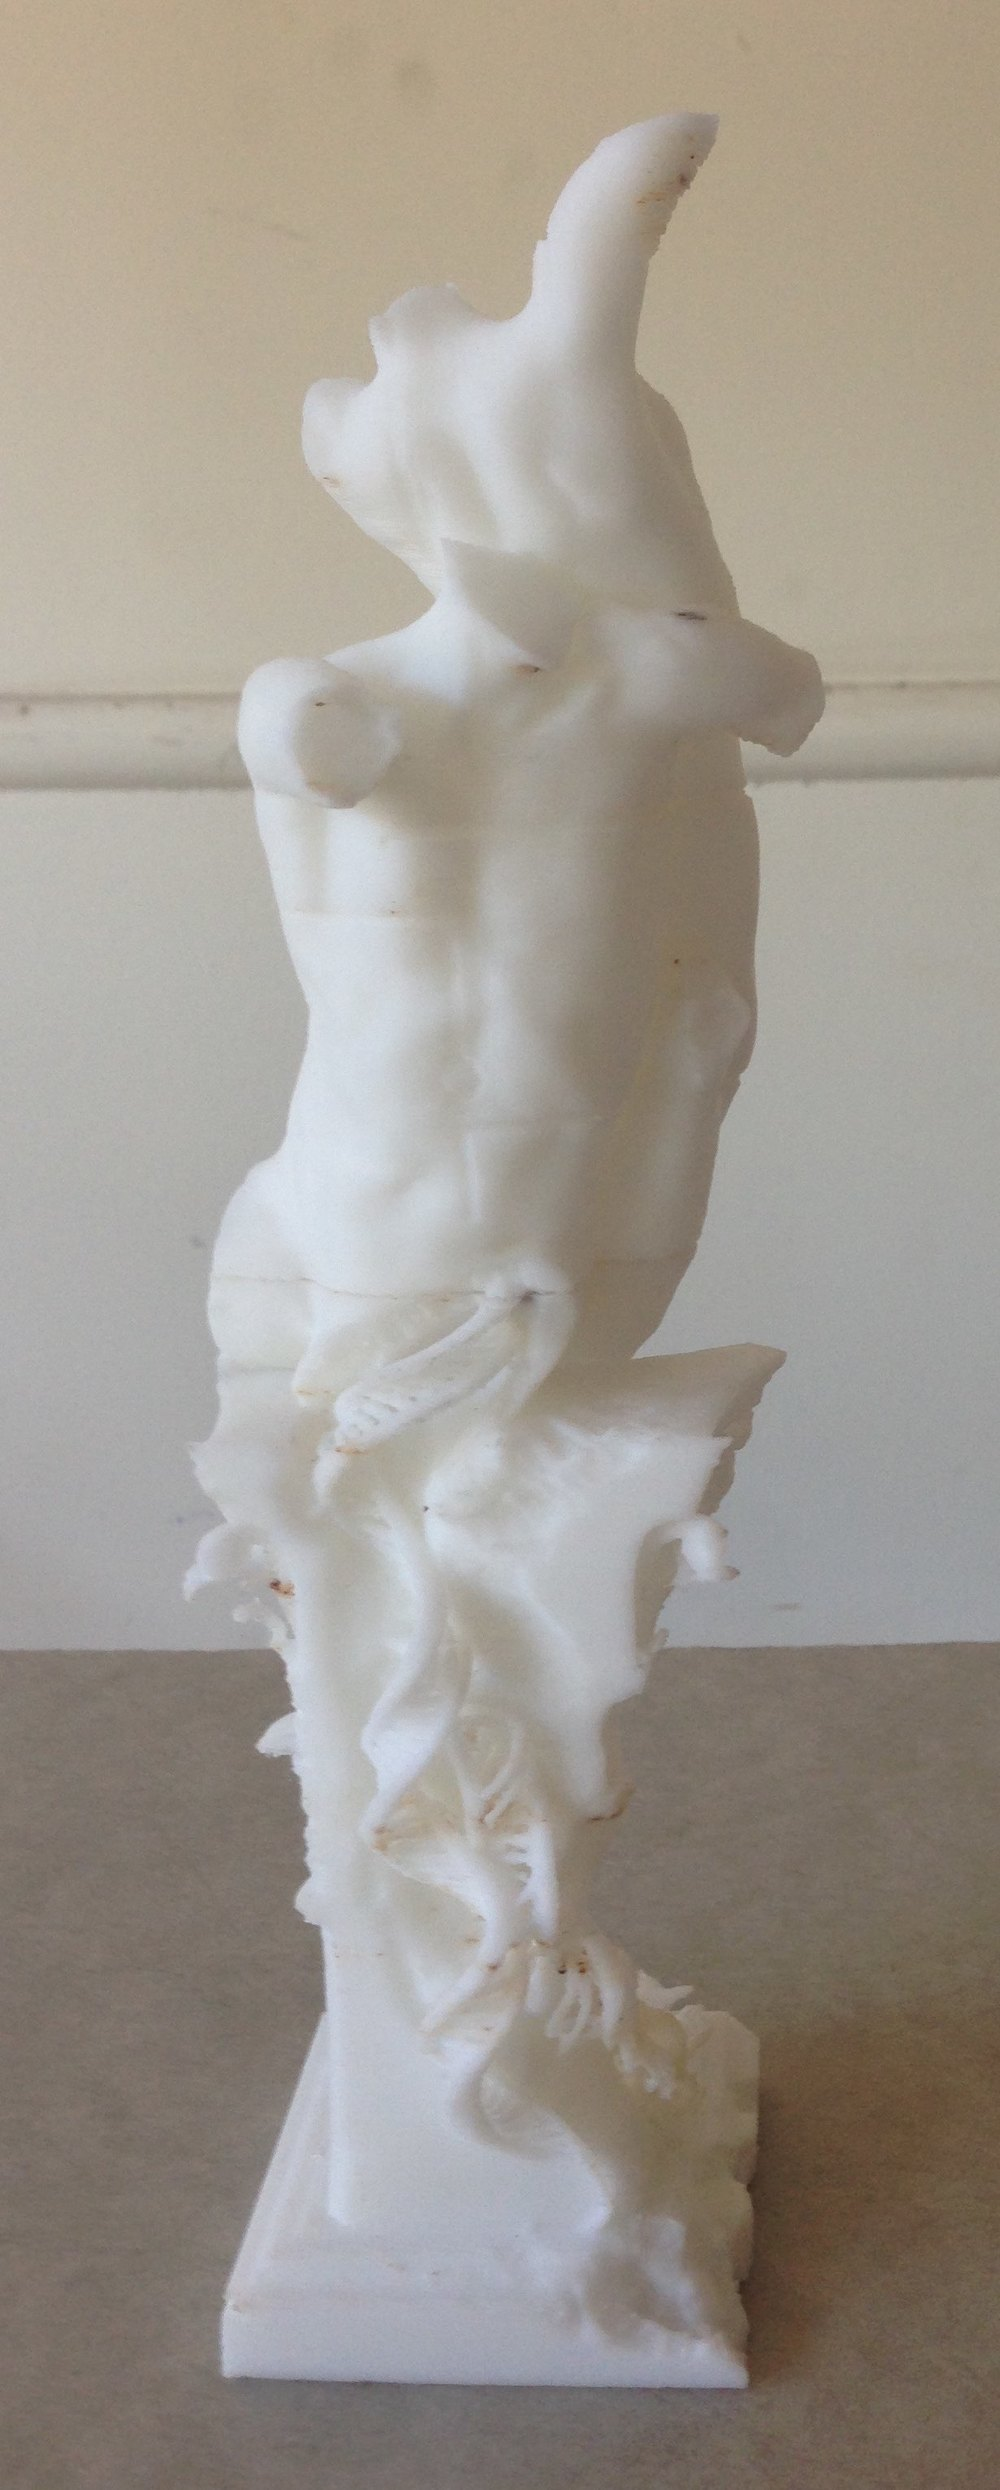 Scott Breton DNA to Digital Sculpture 3D Print3.jpg